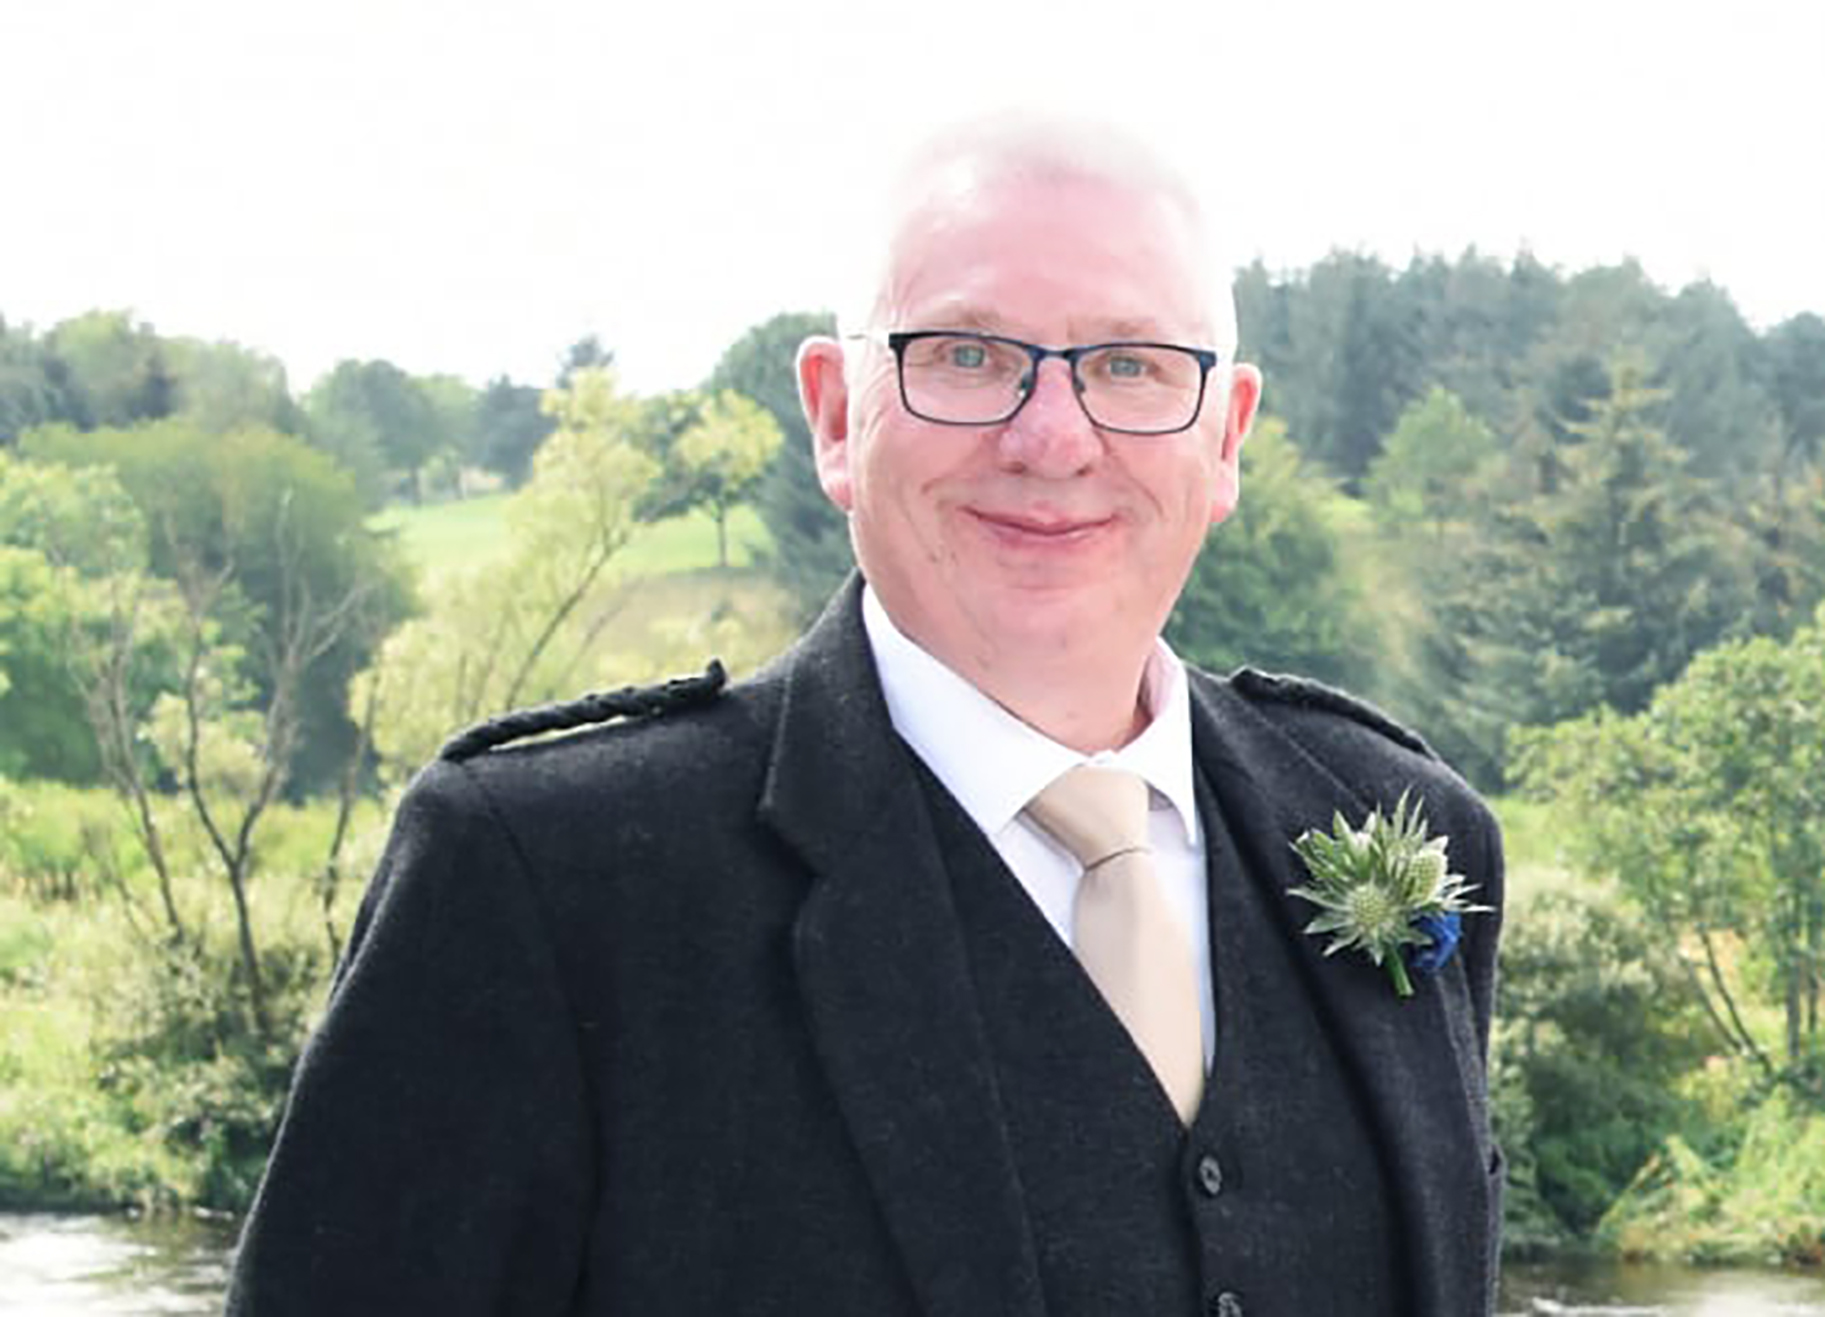 A fundraiser has been set up in memory of Donald Dinnie